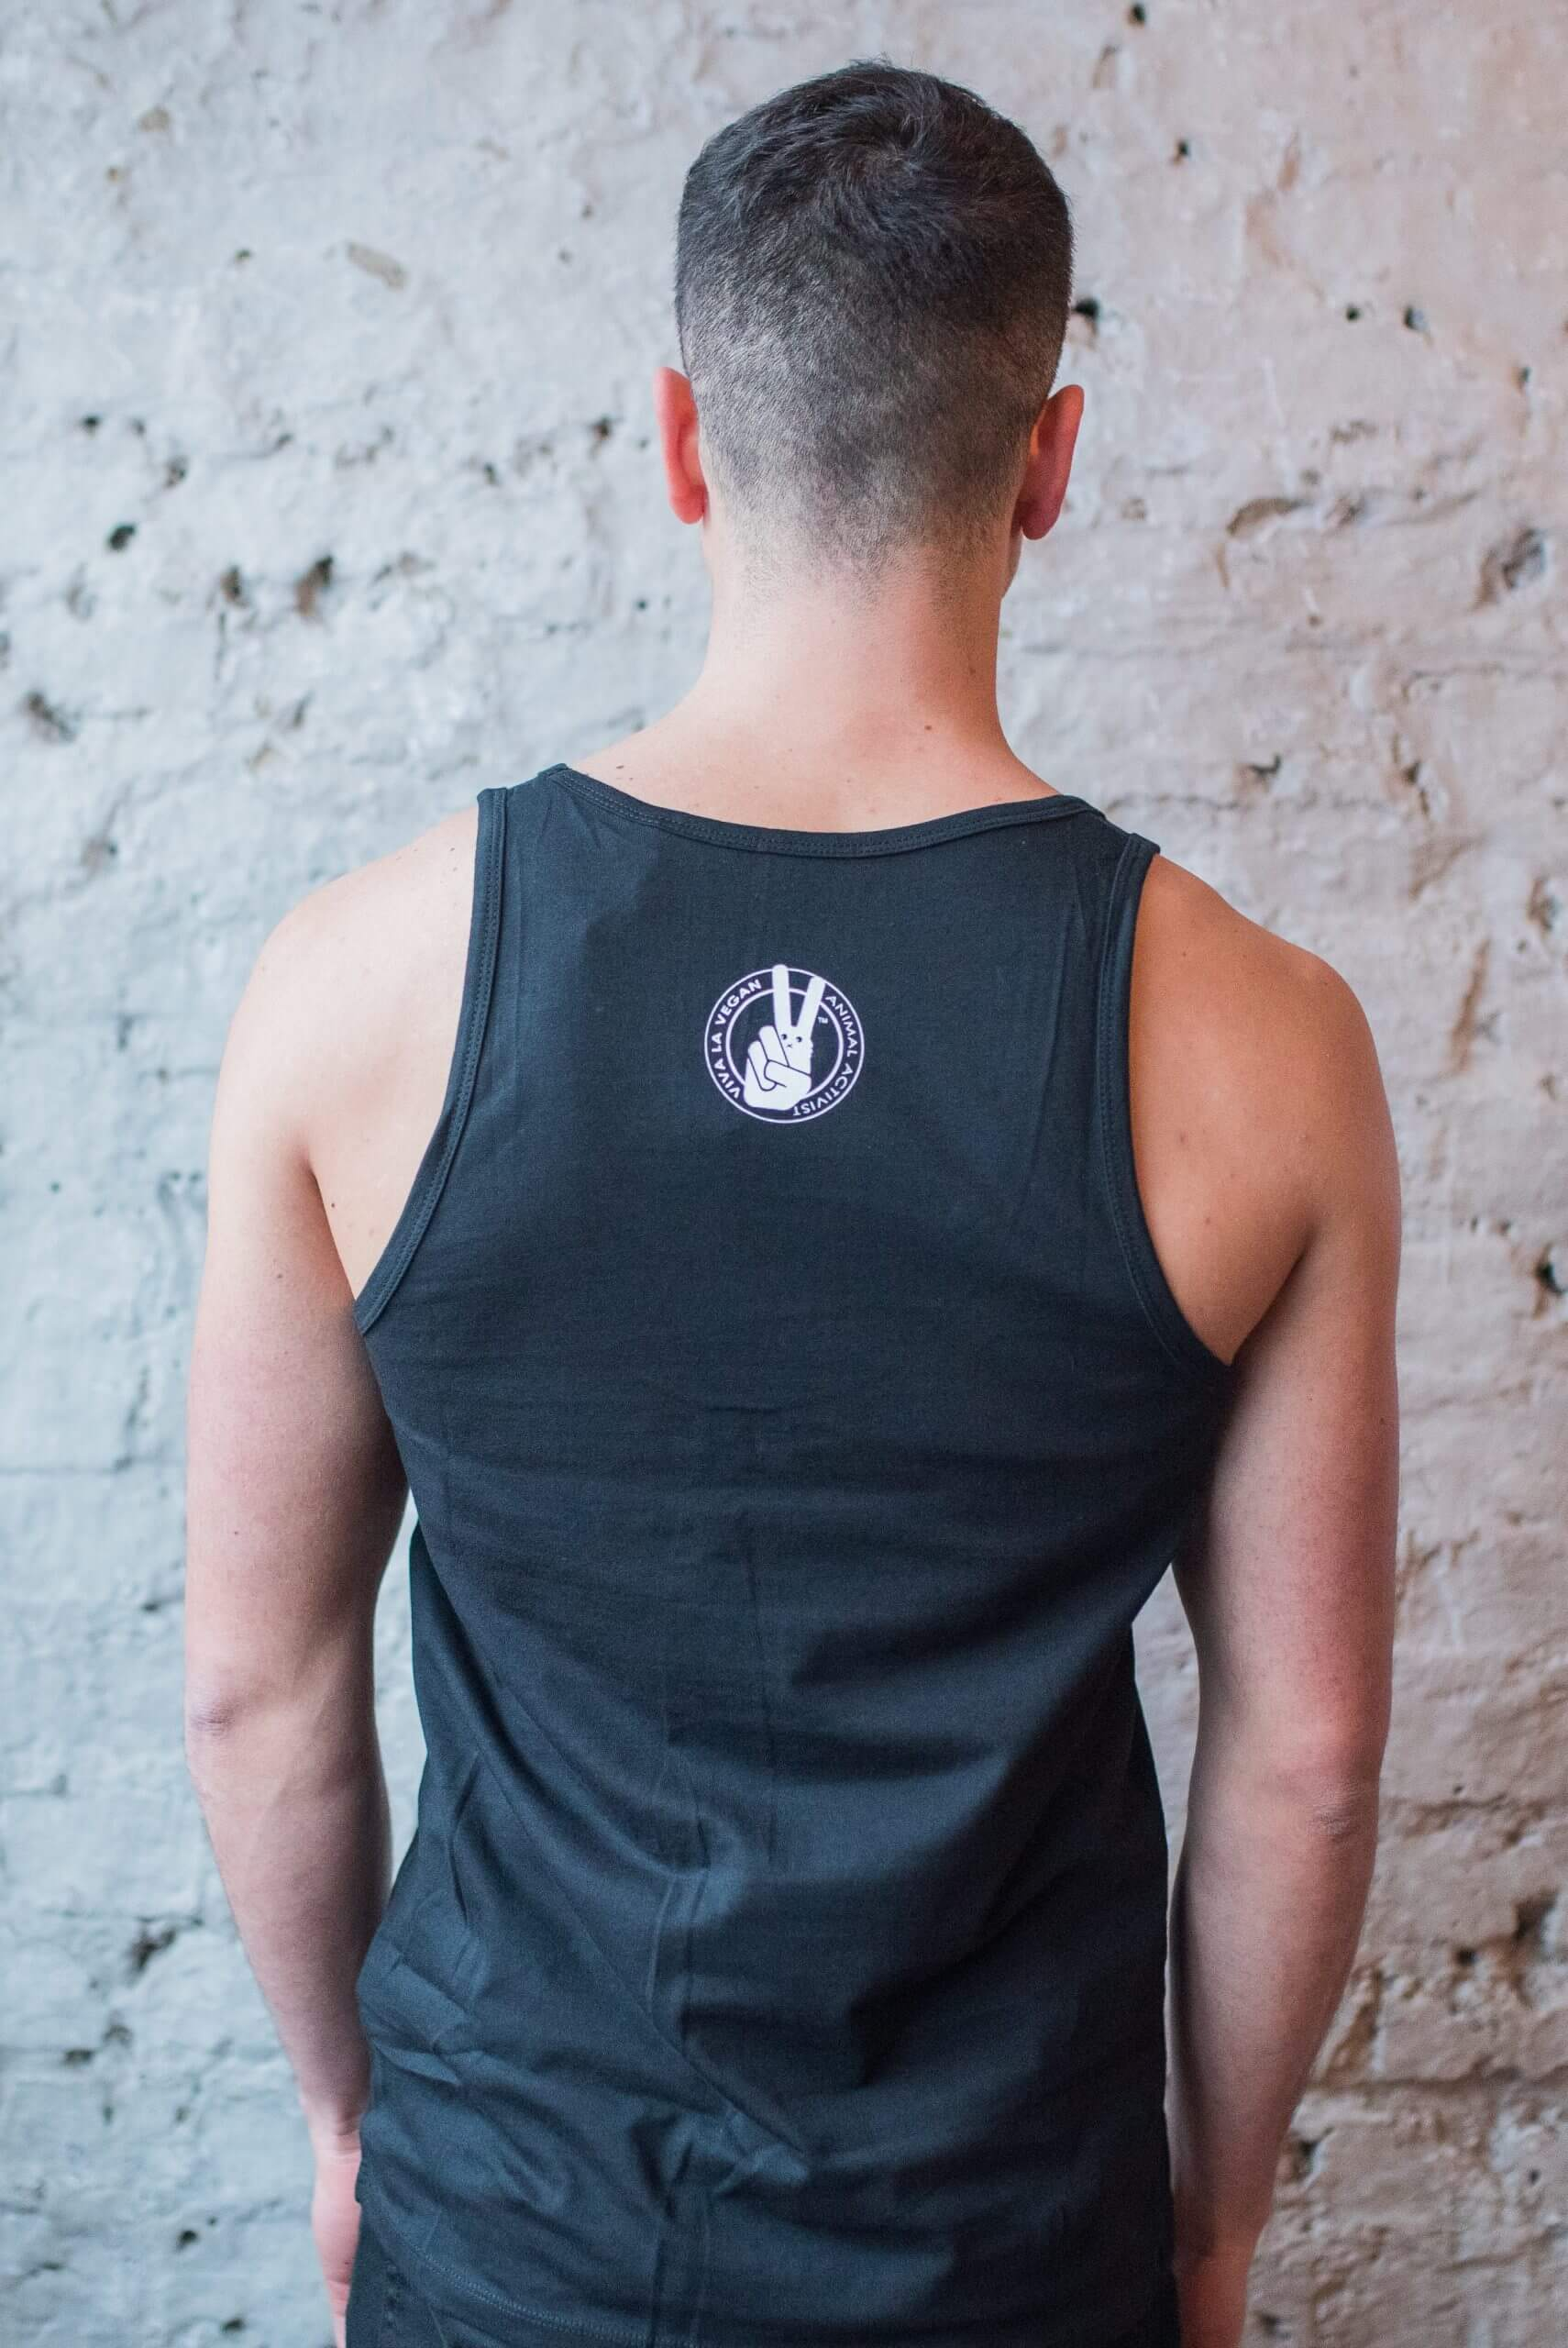 Male Model Wearing Vegan Rocks Statement Organic Cotton Vest